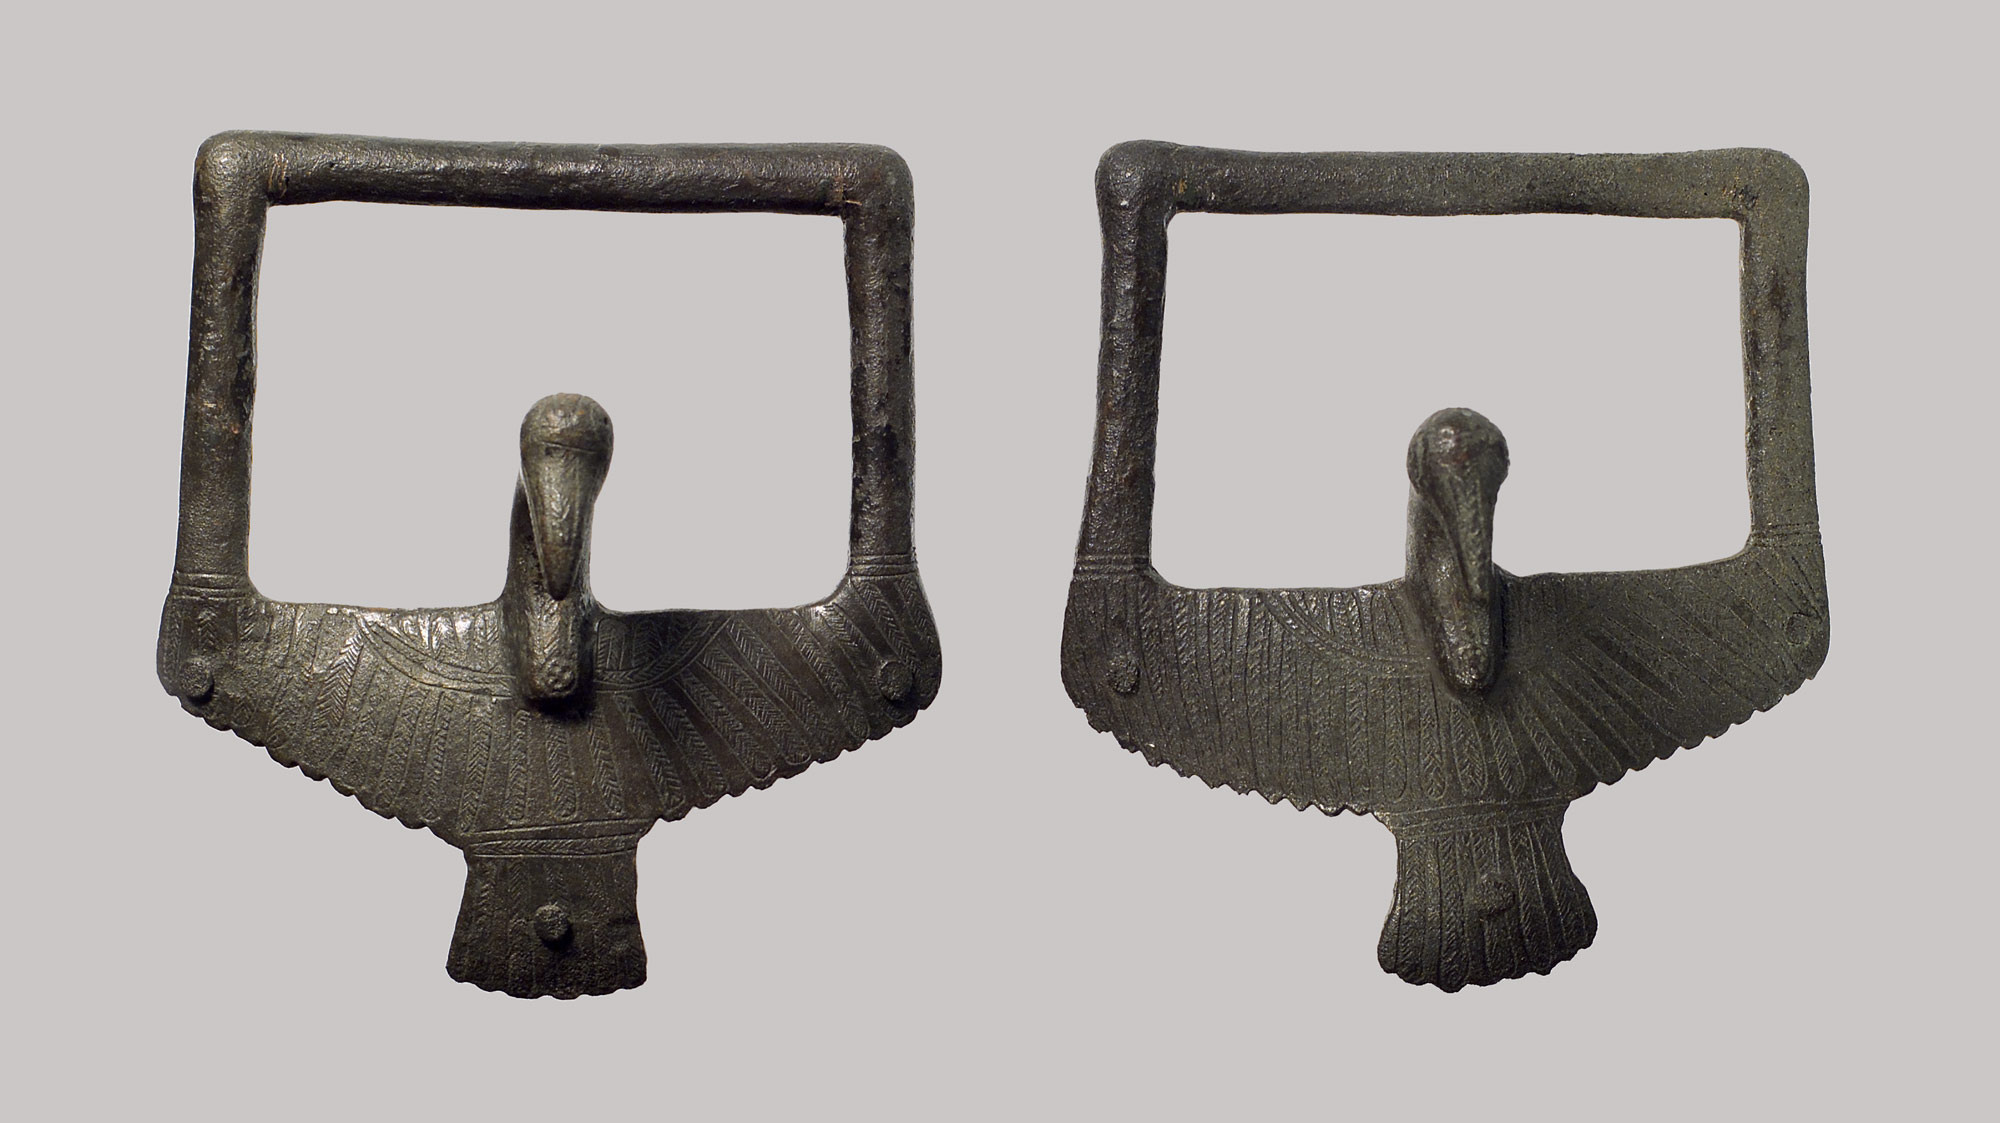 Bird handles from a bowl or basin